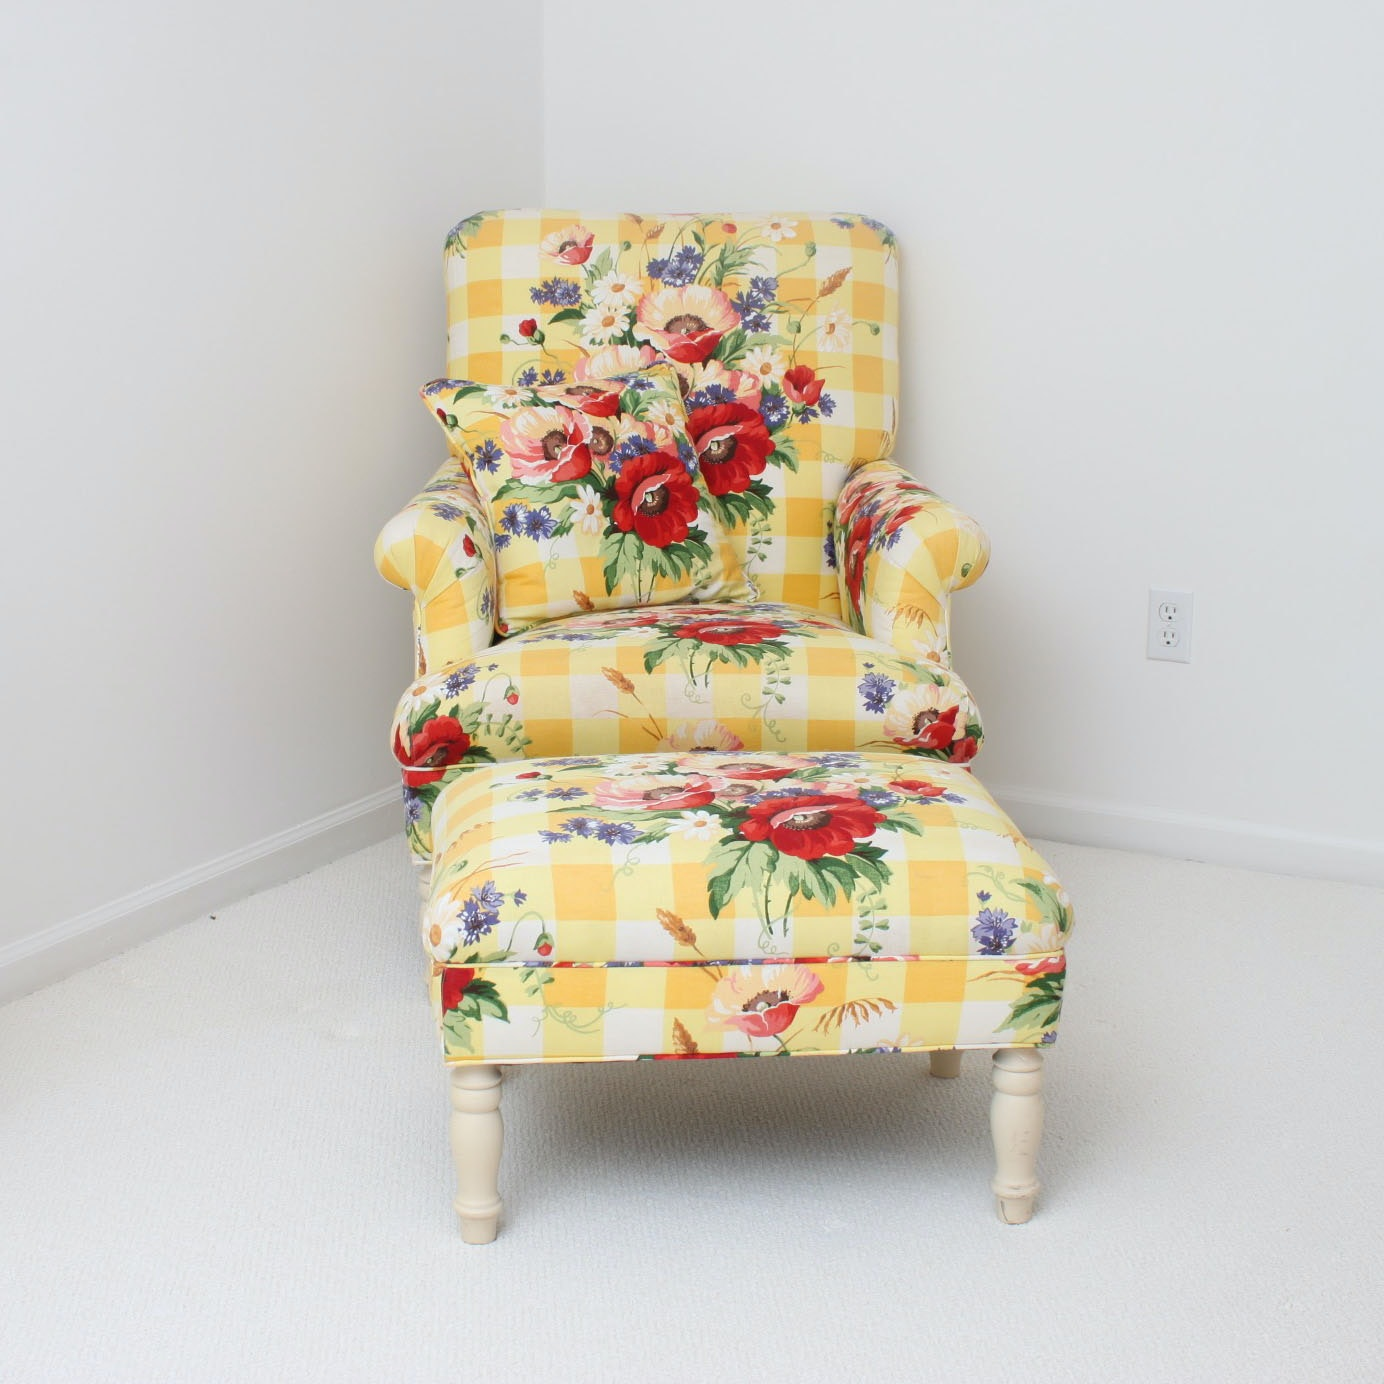 Floral Upholstered Lounge Chair with Ottoman by Pearson